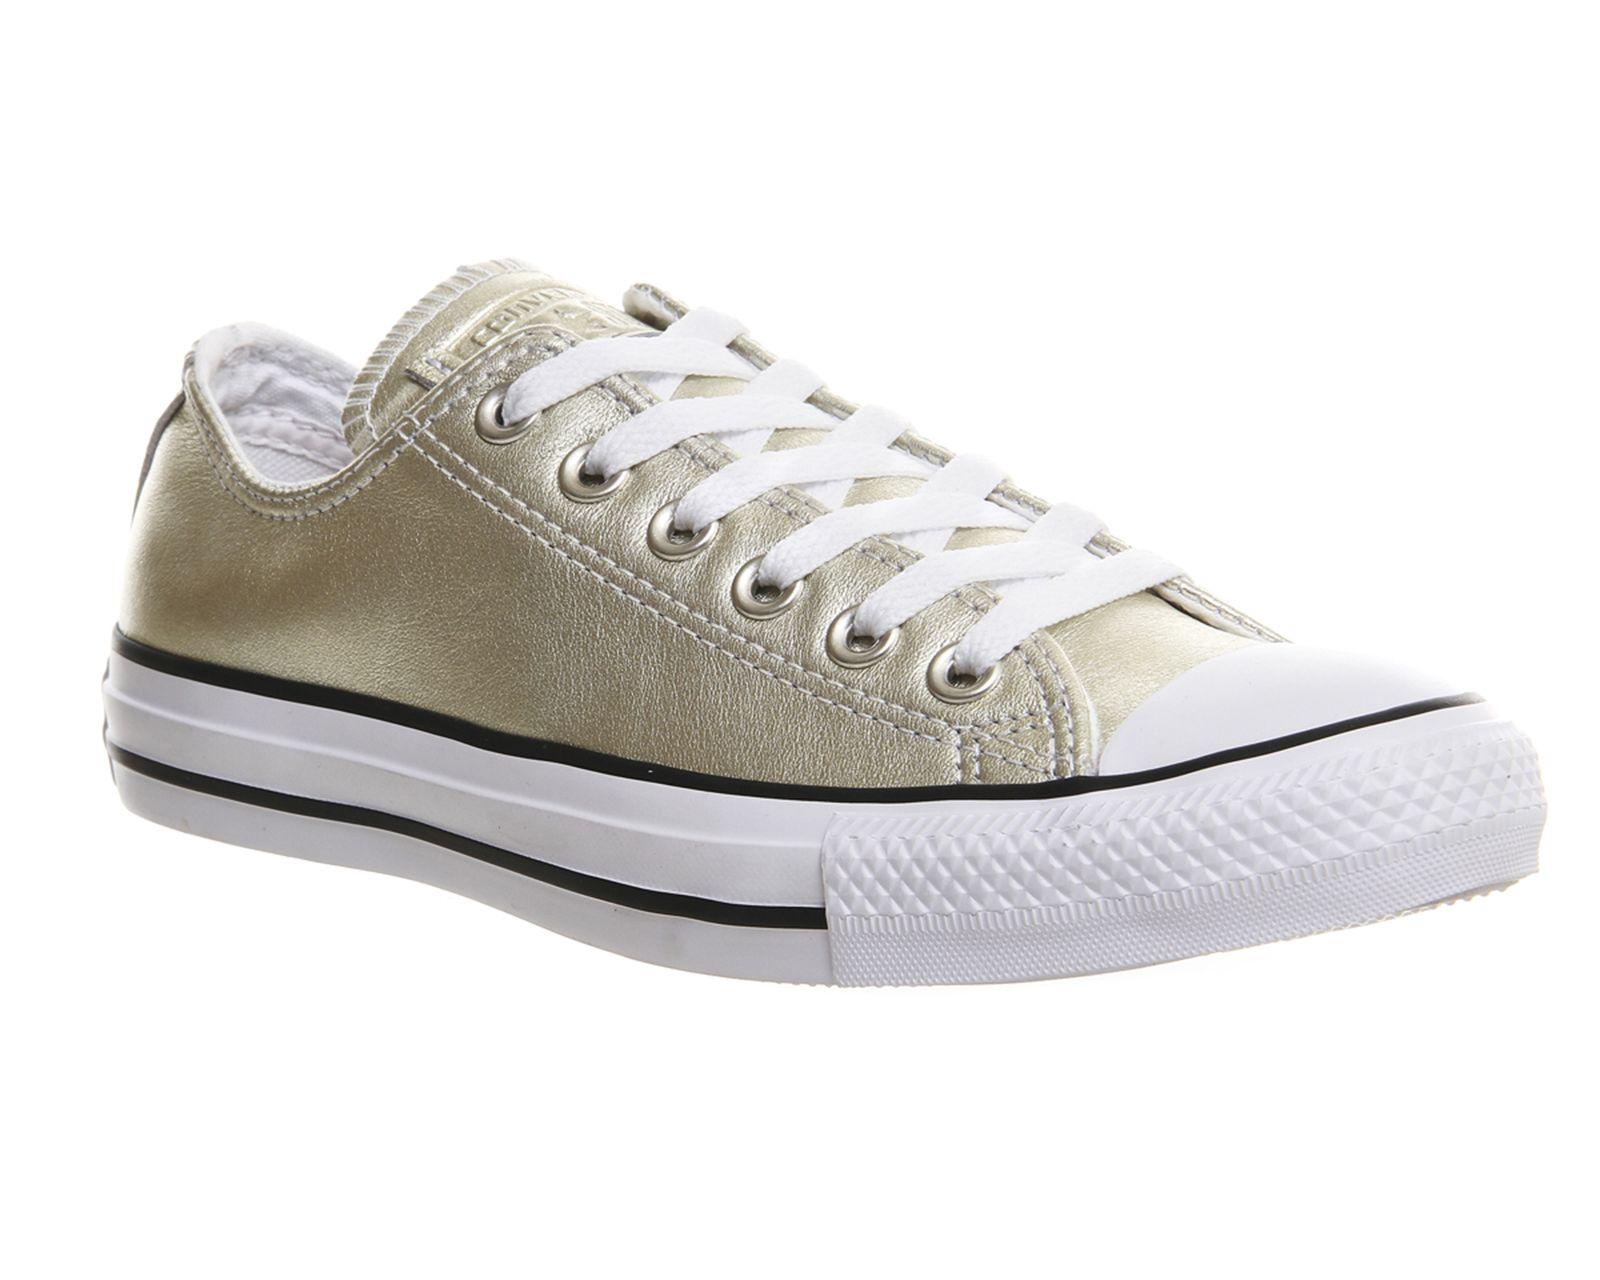 Converse All Star Low Leather New Gold Exclusive - Unisex Sportschuhe